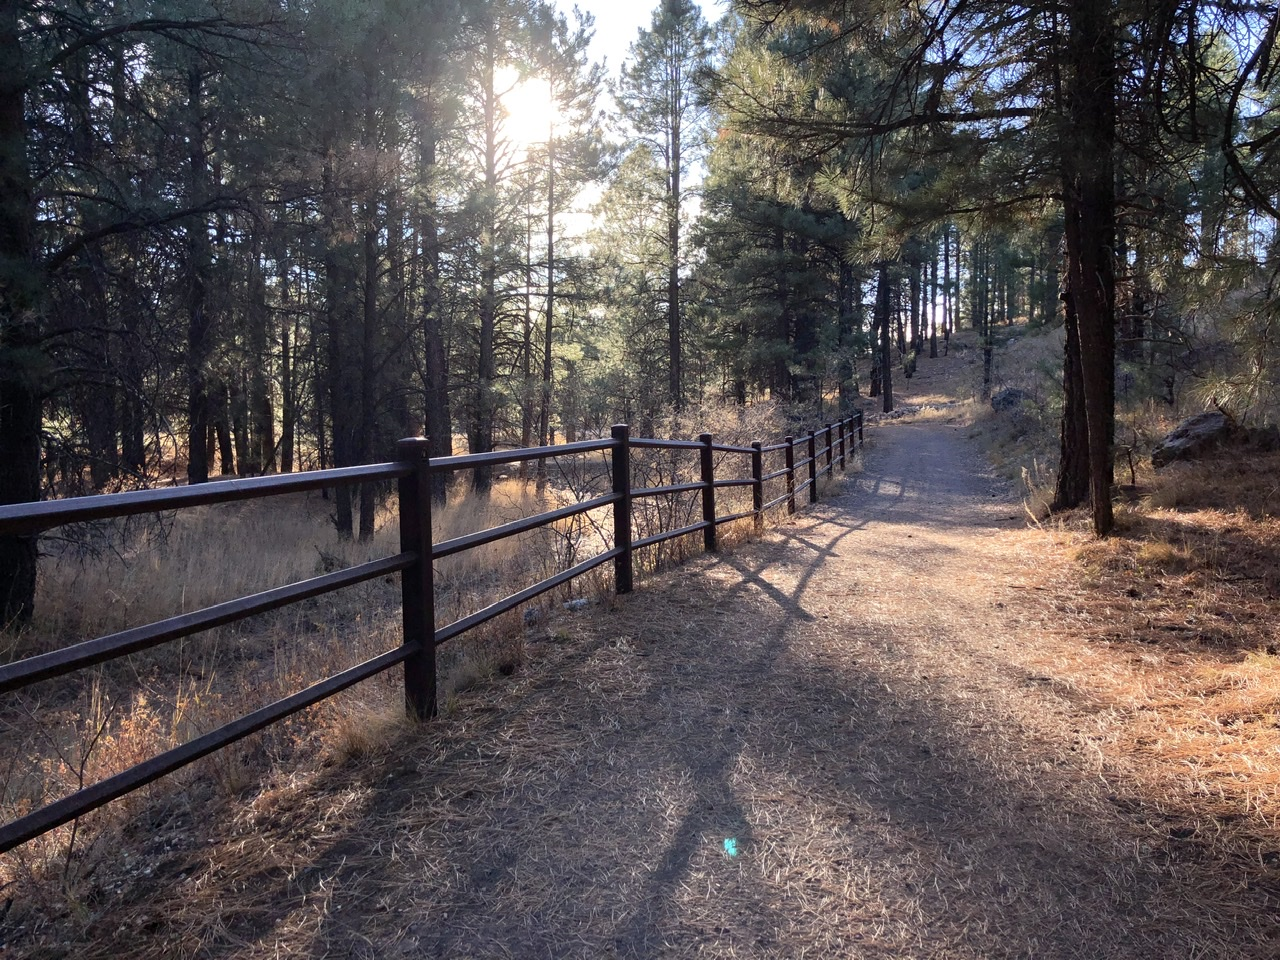 A forest path along a railing and bank of pine trees, with low sun shining in background